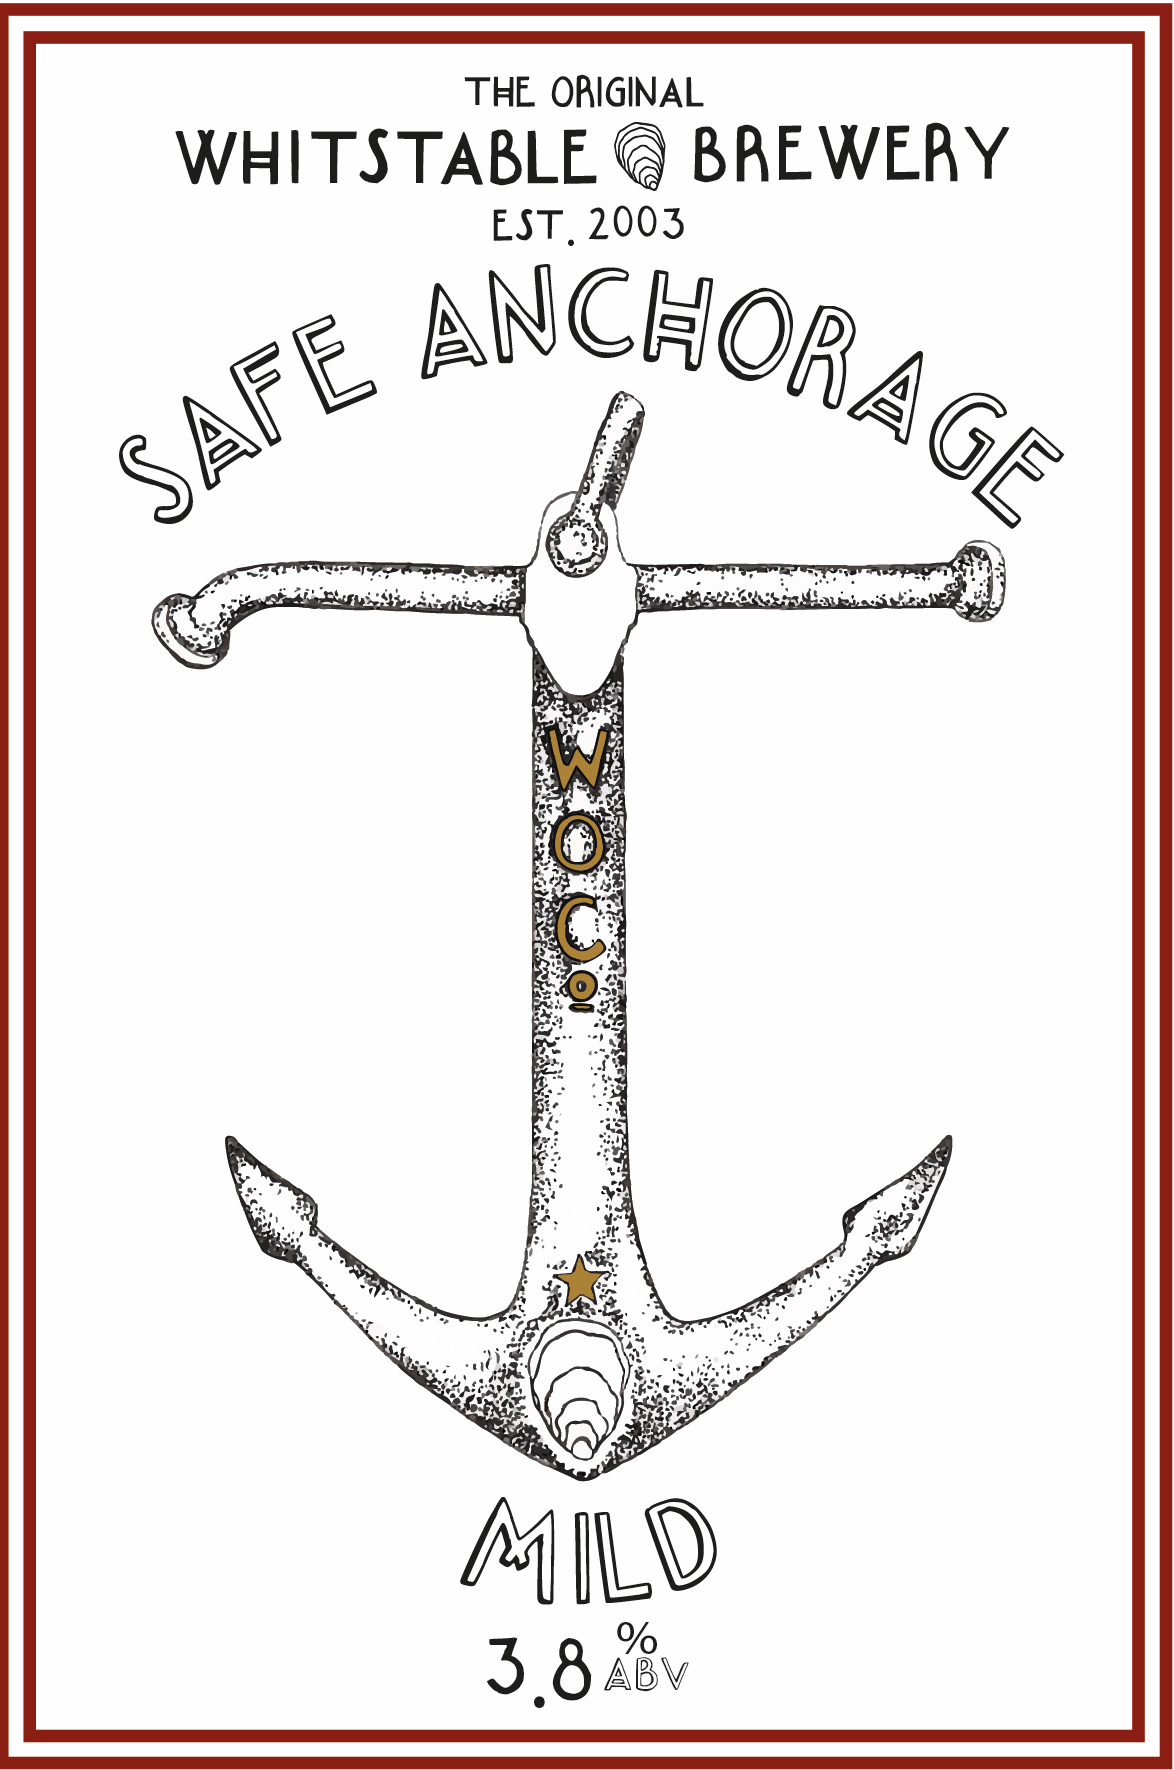 Safe Anchorage Ruby Mild